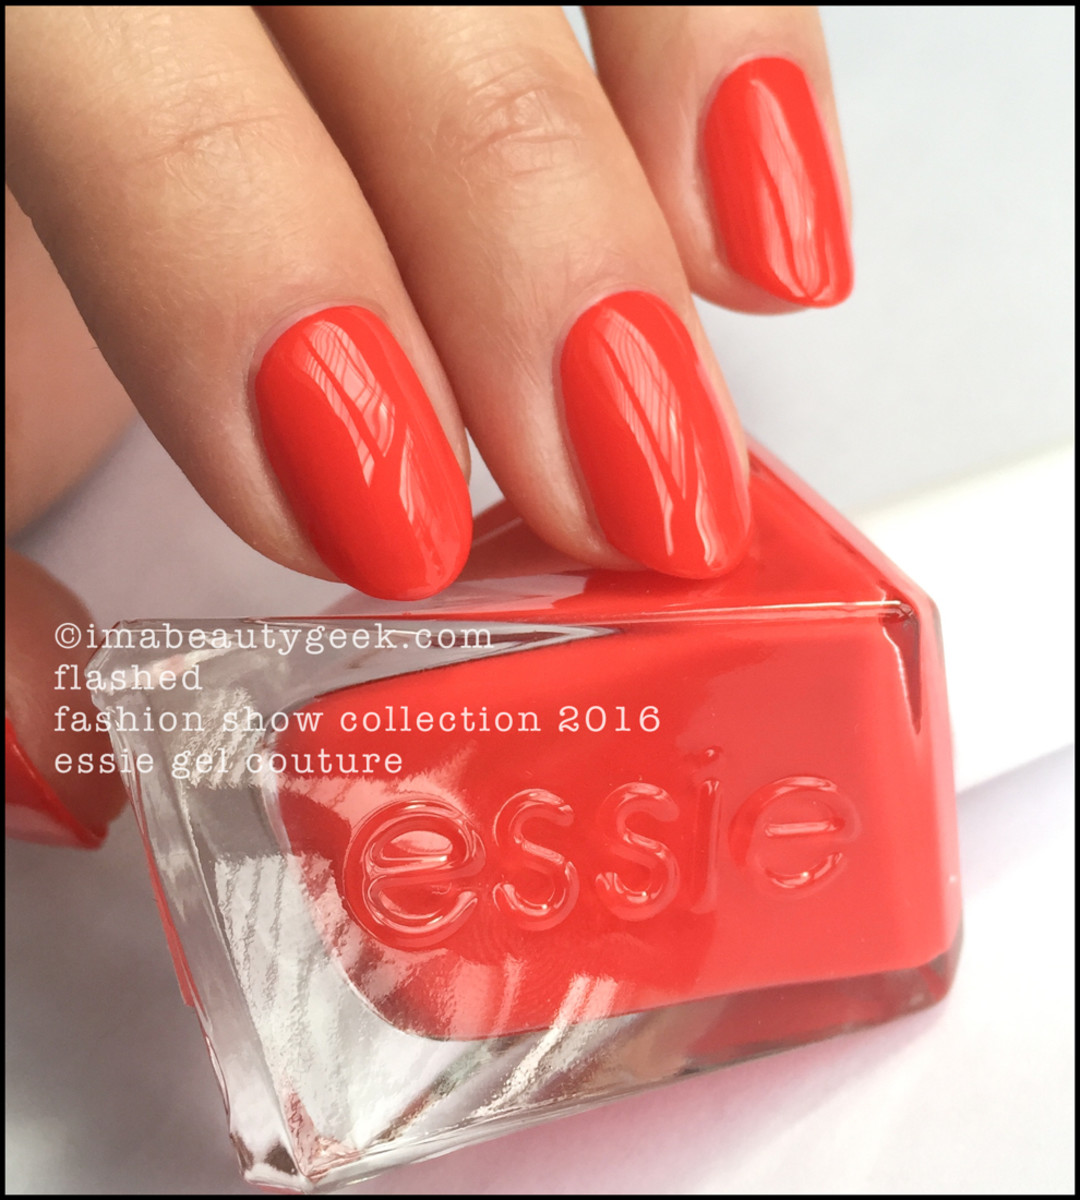 Essie Flashed_Essie Gel Couture Swatches Review 2016